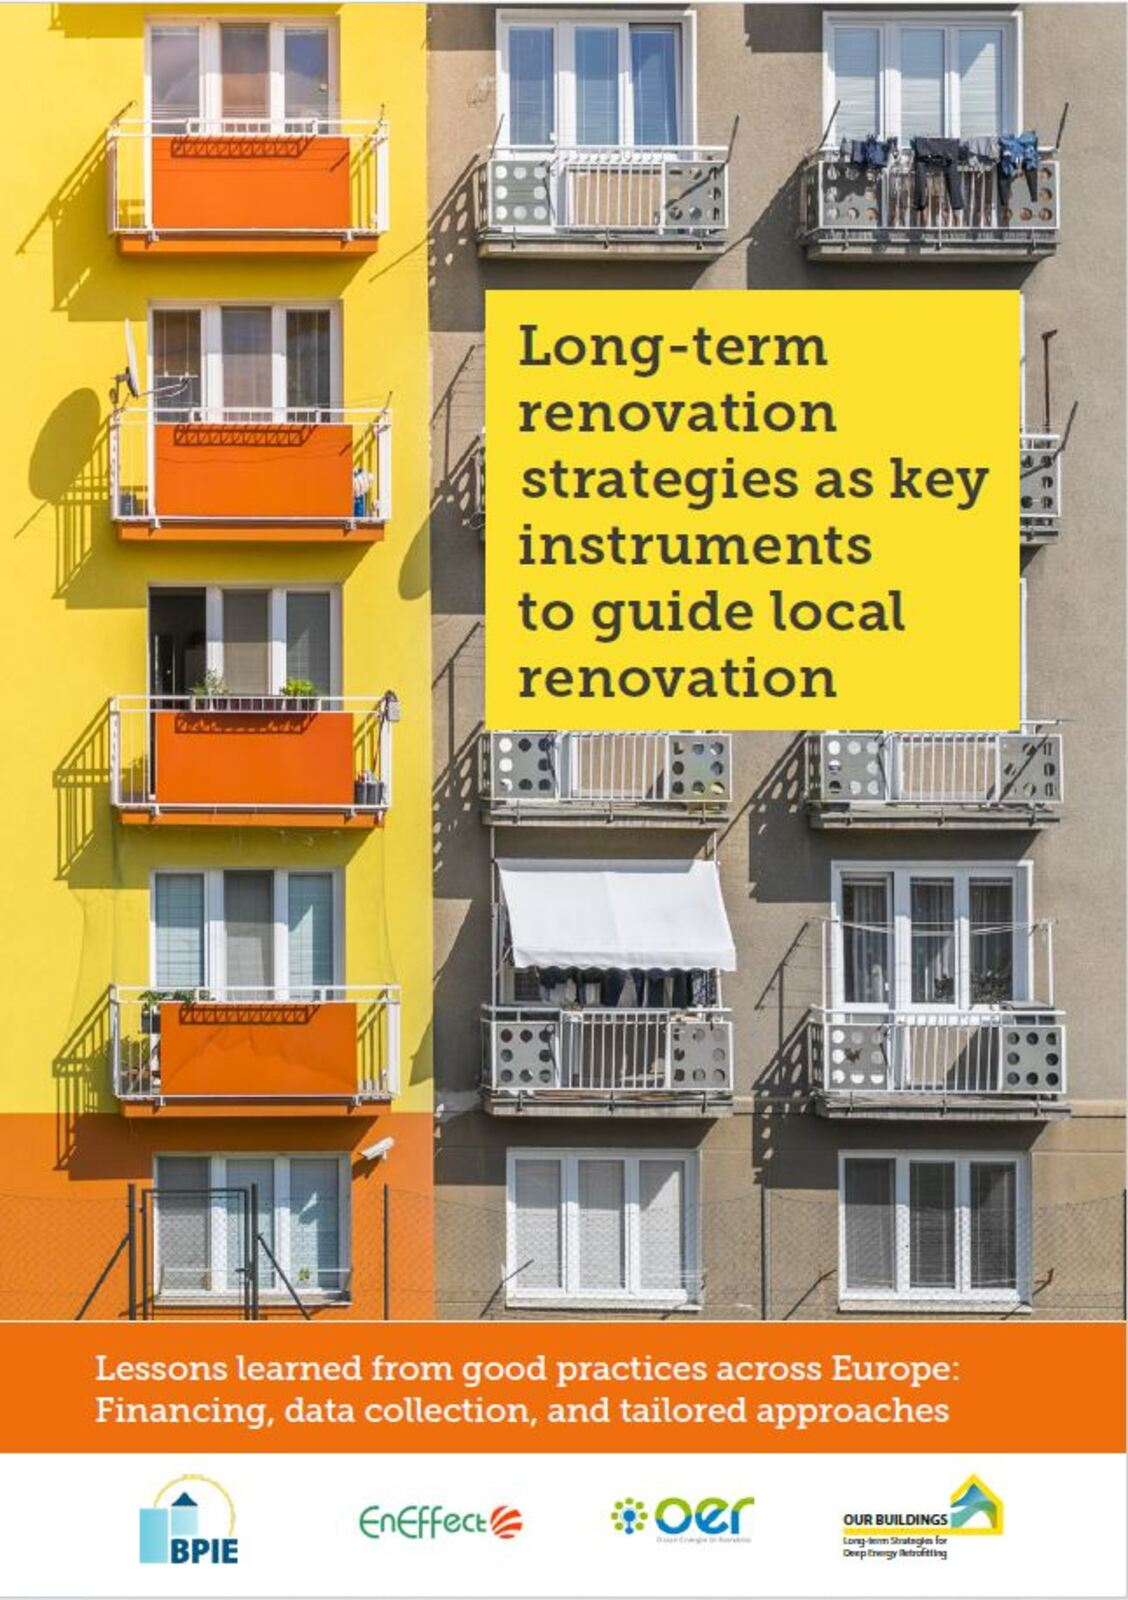 [New Report] Long-term renovation strategies as key instruments to guide local renovation -  Lessons learned from good practices across Europe